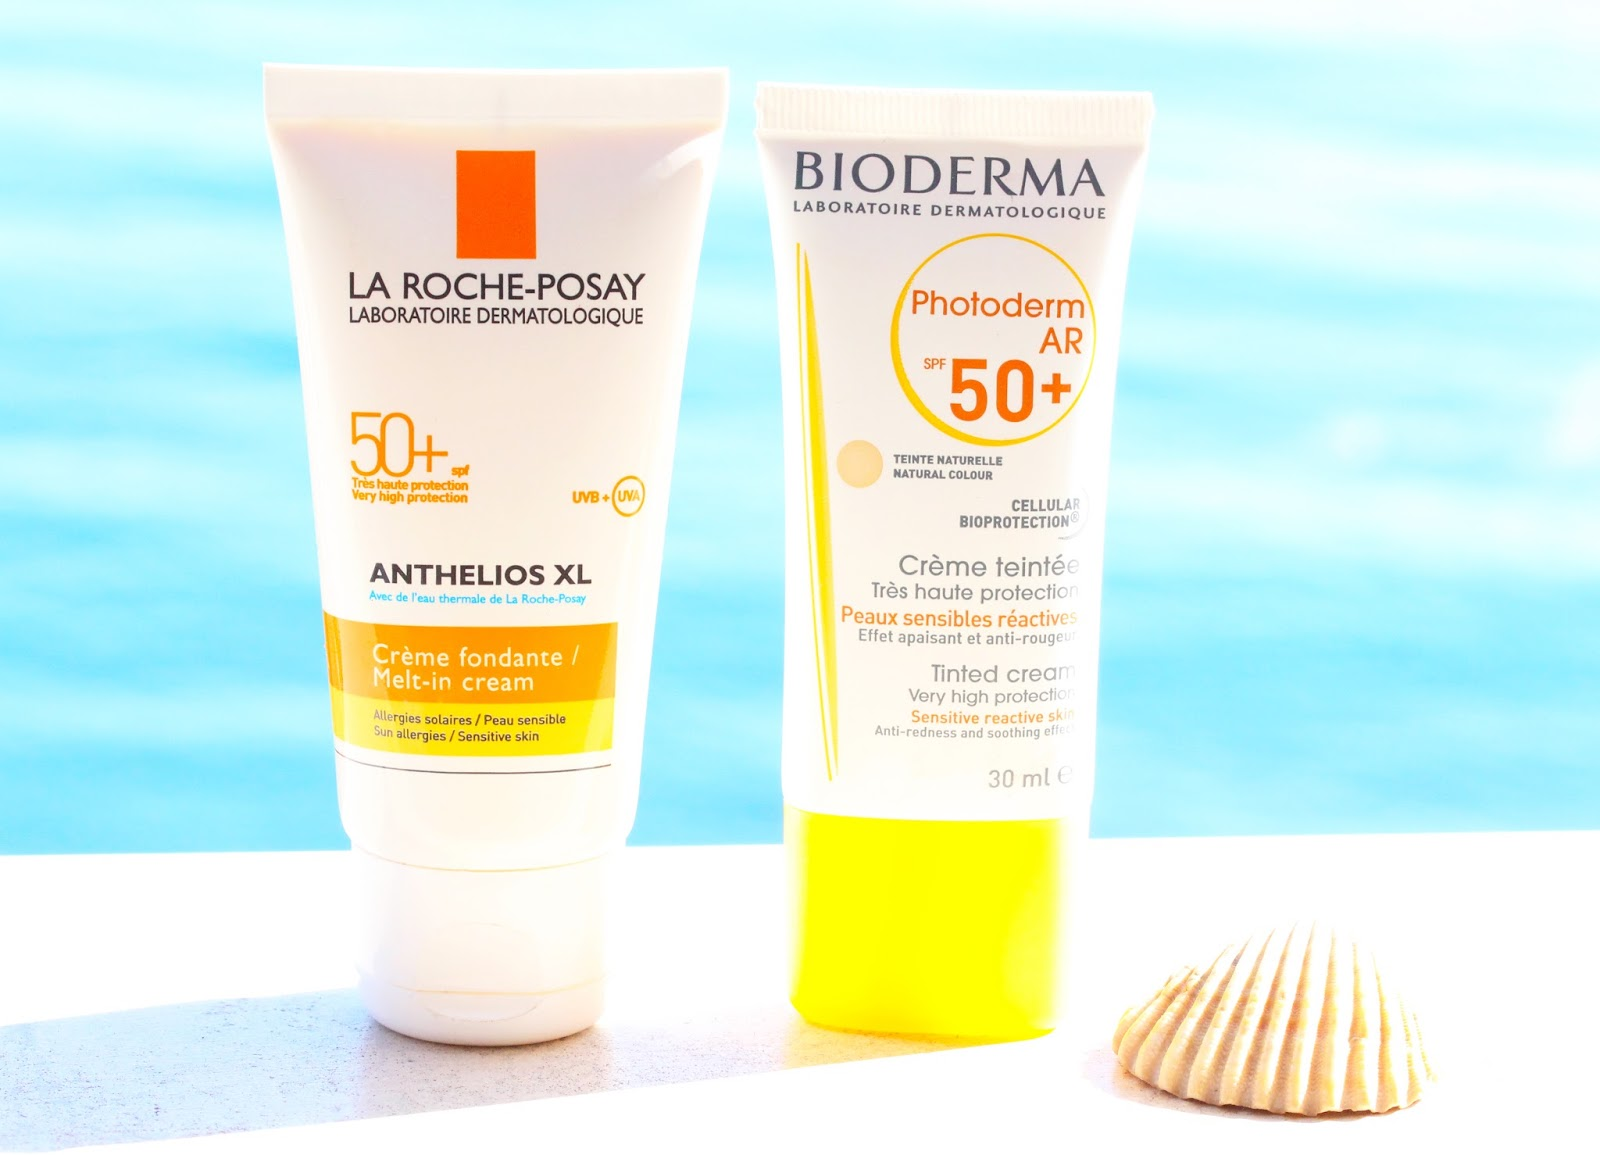 La Roche-Posay Anthelios XL Sunscreen